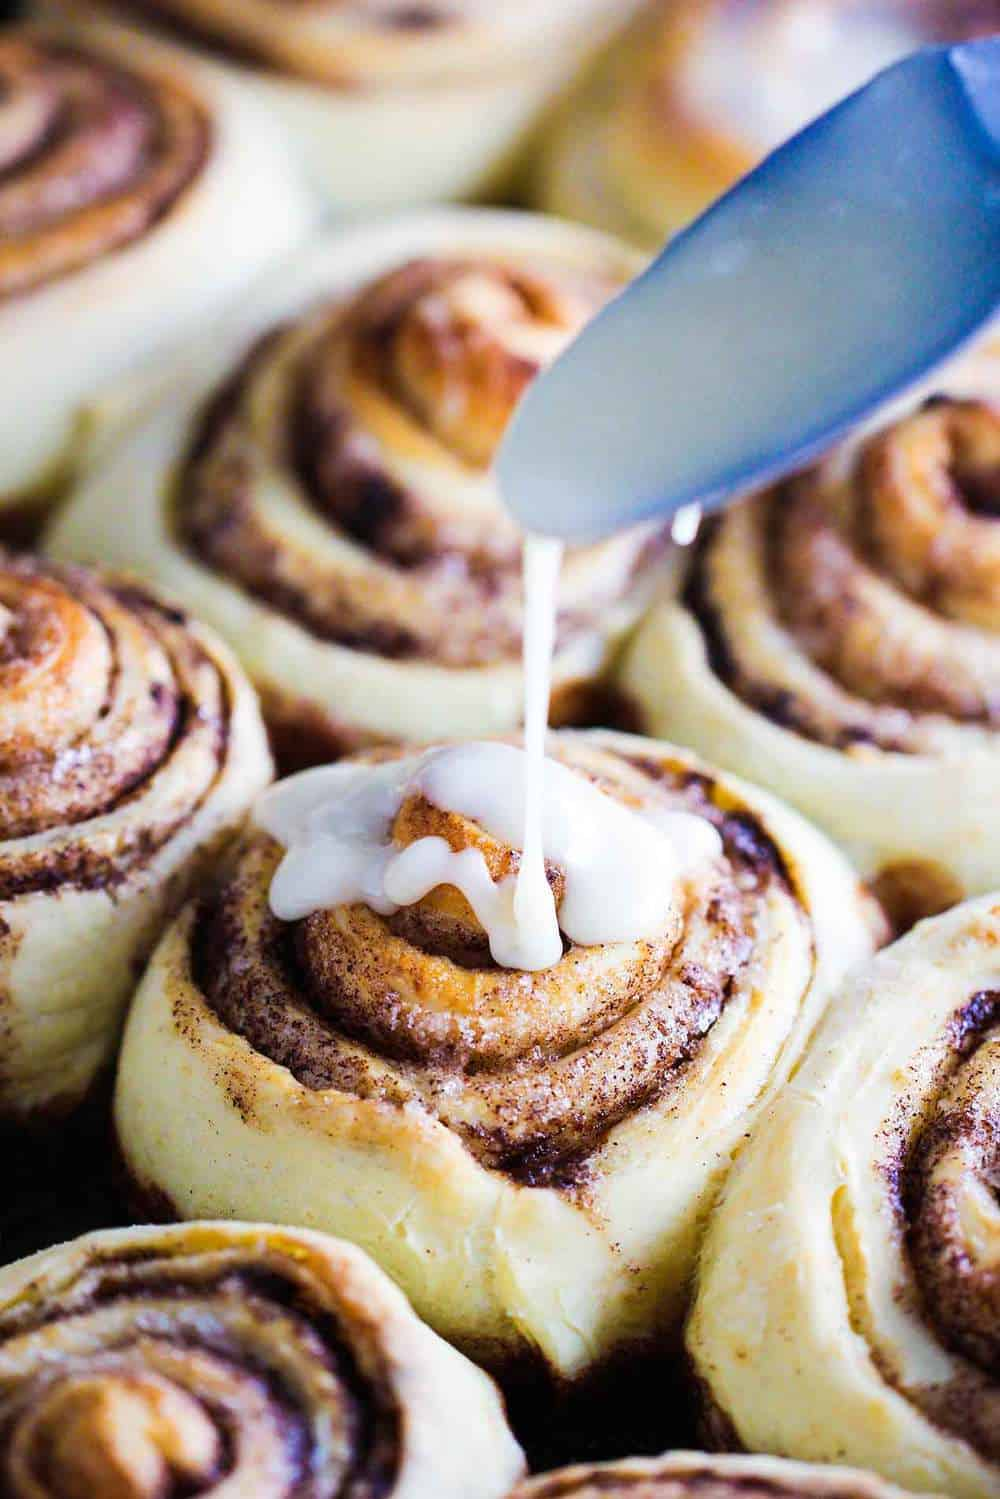 Grandma's Homemade Cinnamon Rolls recipe